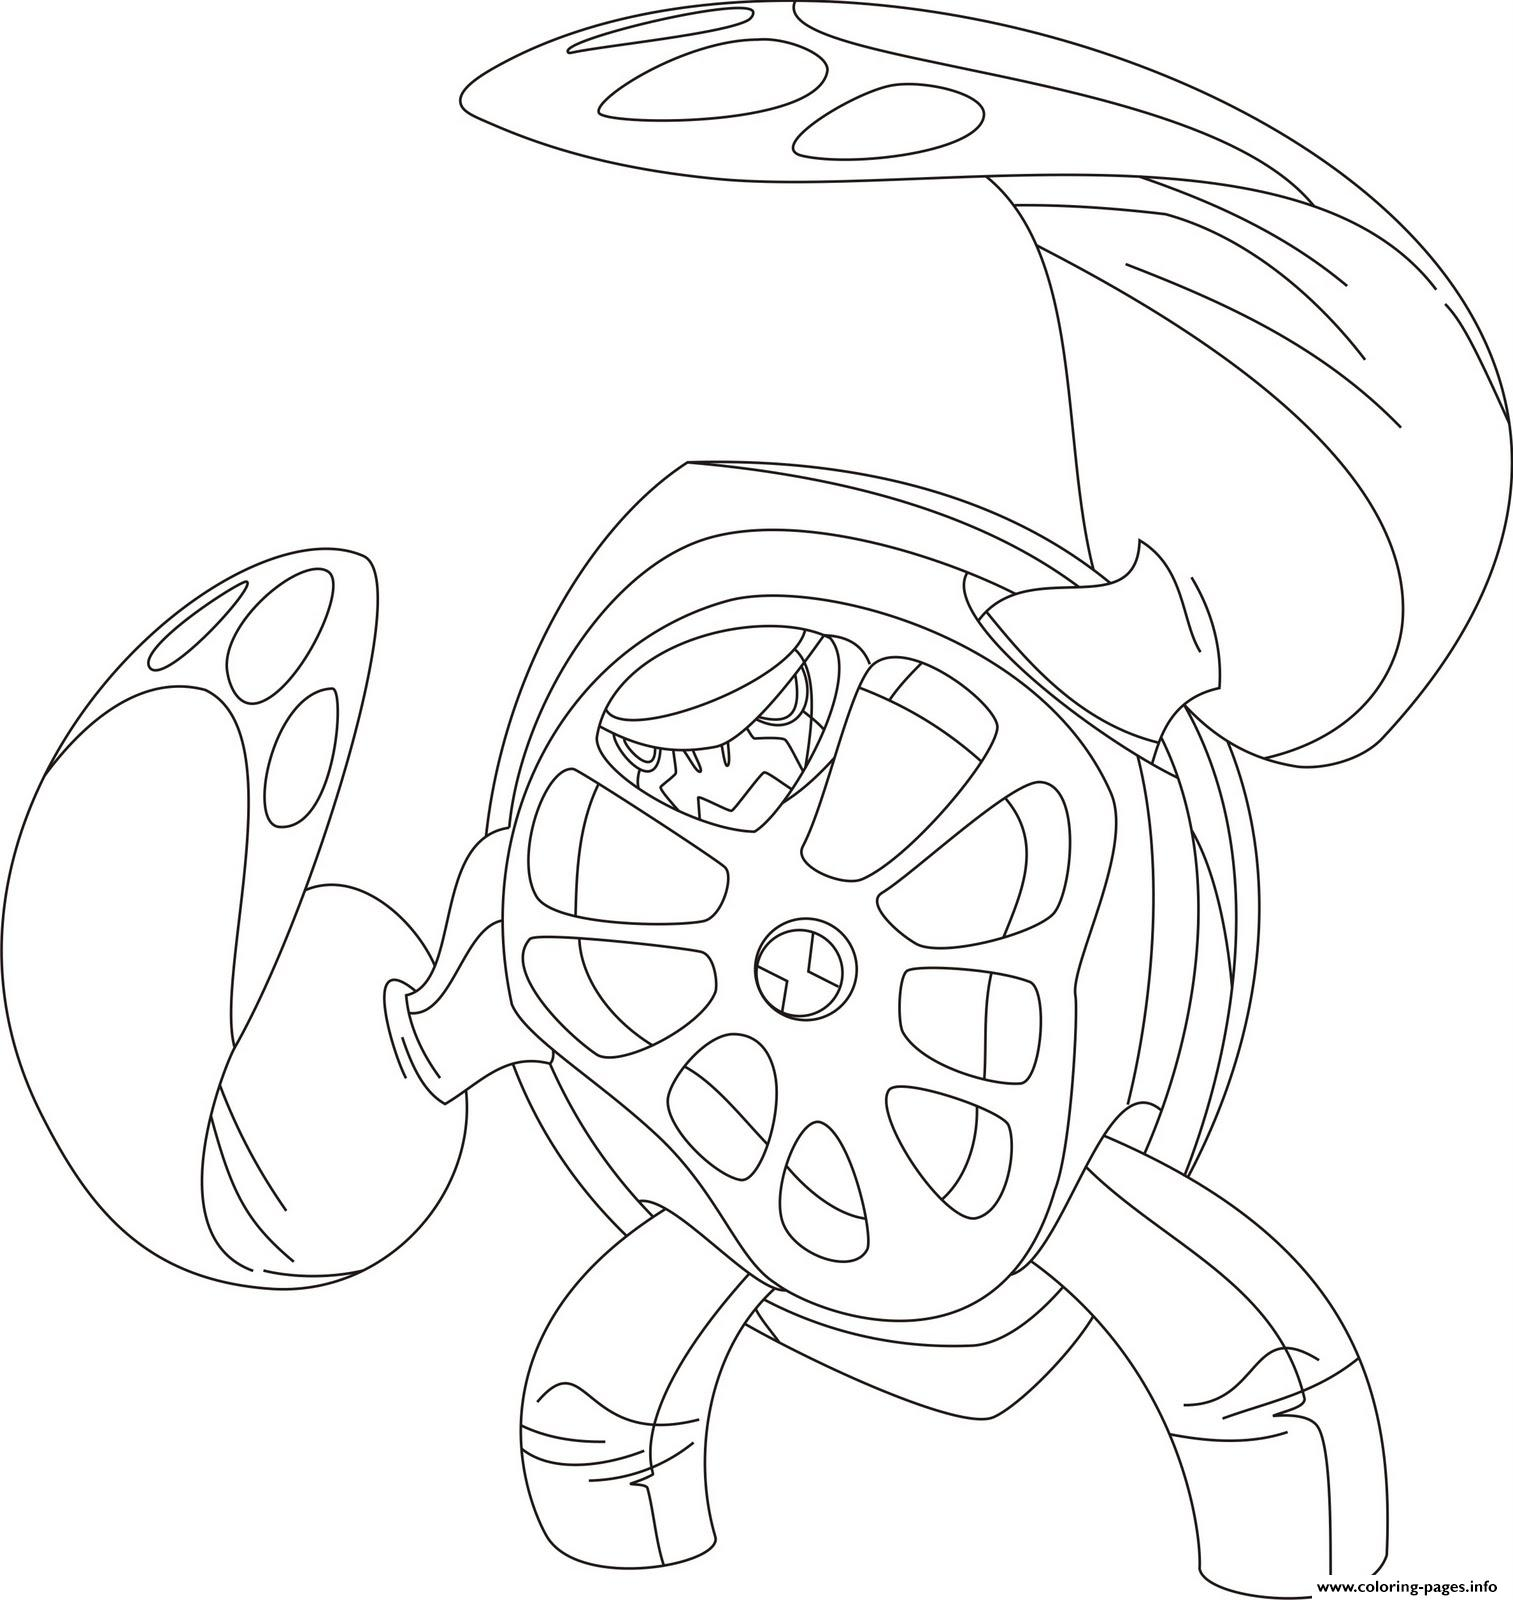 Dessin Ben 10 118 Coloring Pages Printable